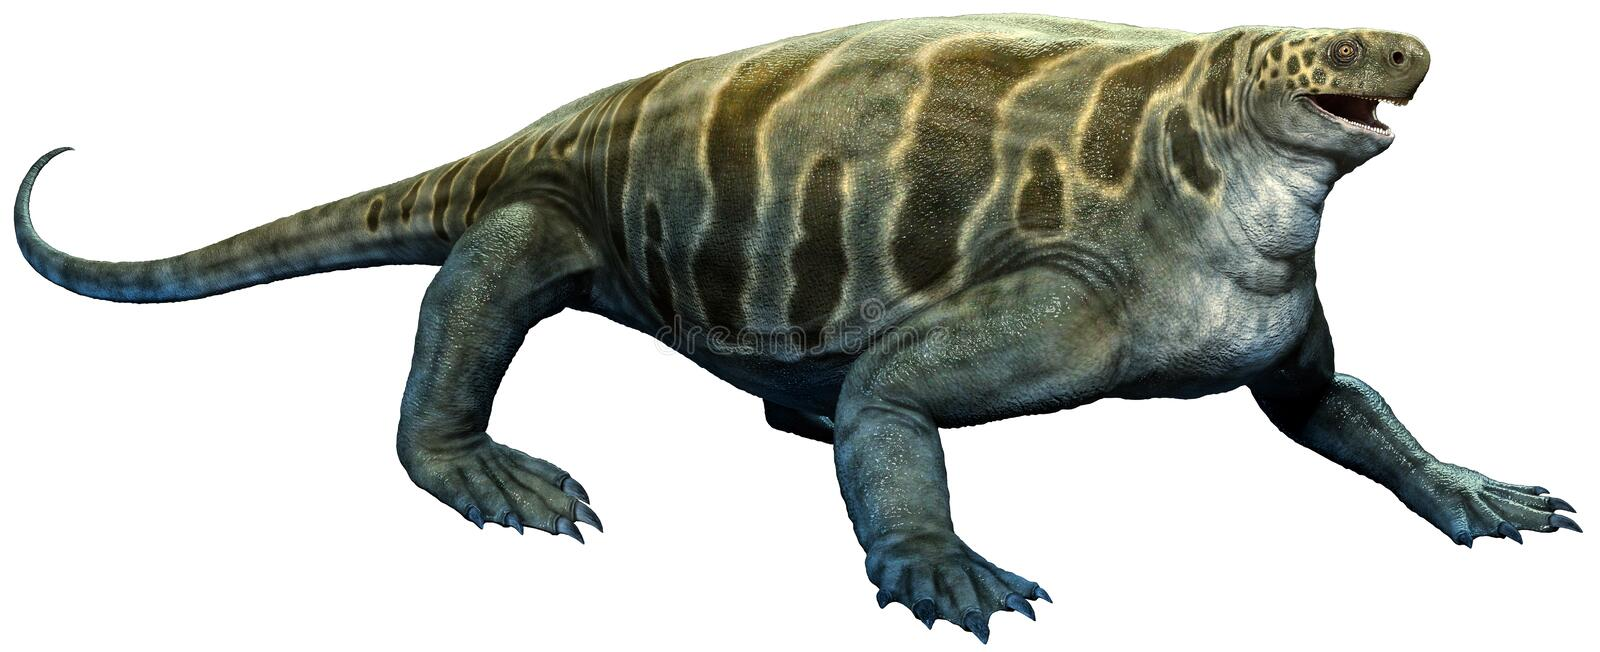 Cotylorhynchus from the Permian era 3D illustration royalty free illustration